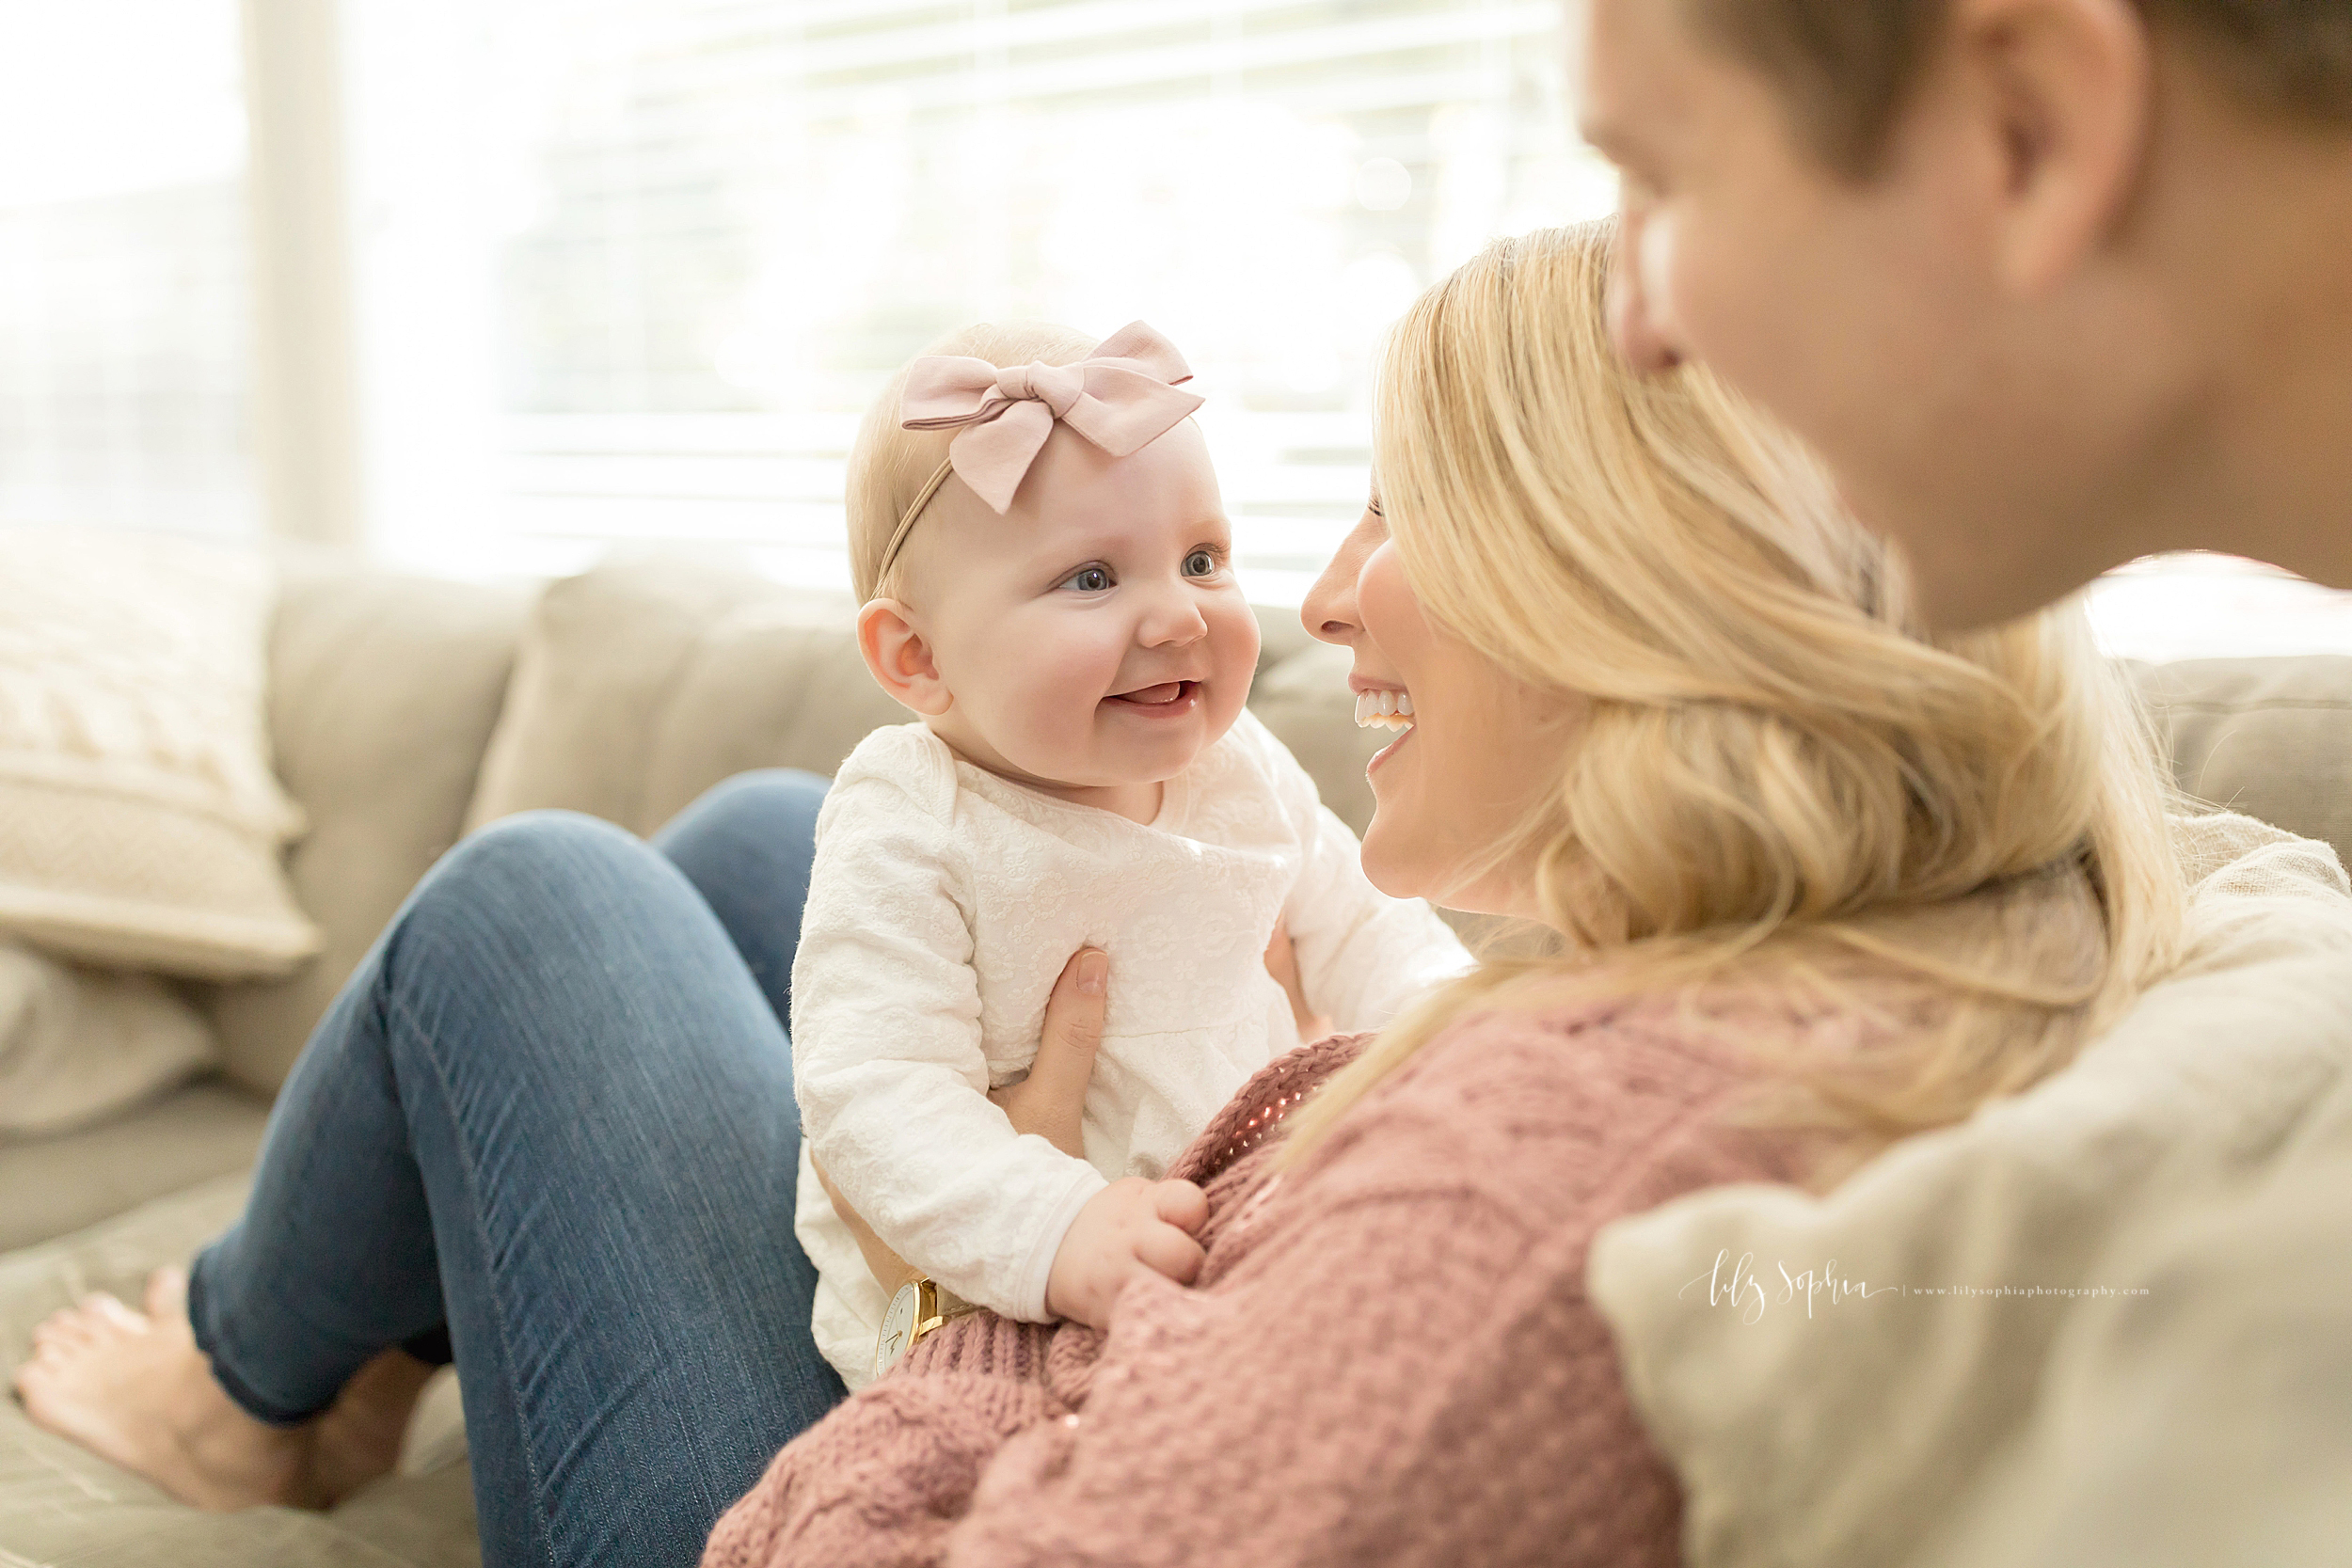 atlanta-midtown-brookhaven-ashford-dunwoody-virginia-highlands-roswell-decatur-lily-sophia-photography-in-home-six-month-milestone-family-lifestyle-session-sandy-springs_0655.jpg